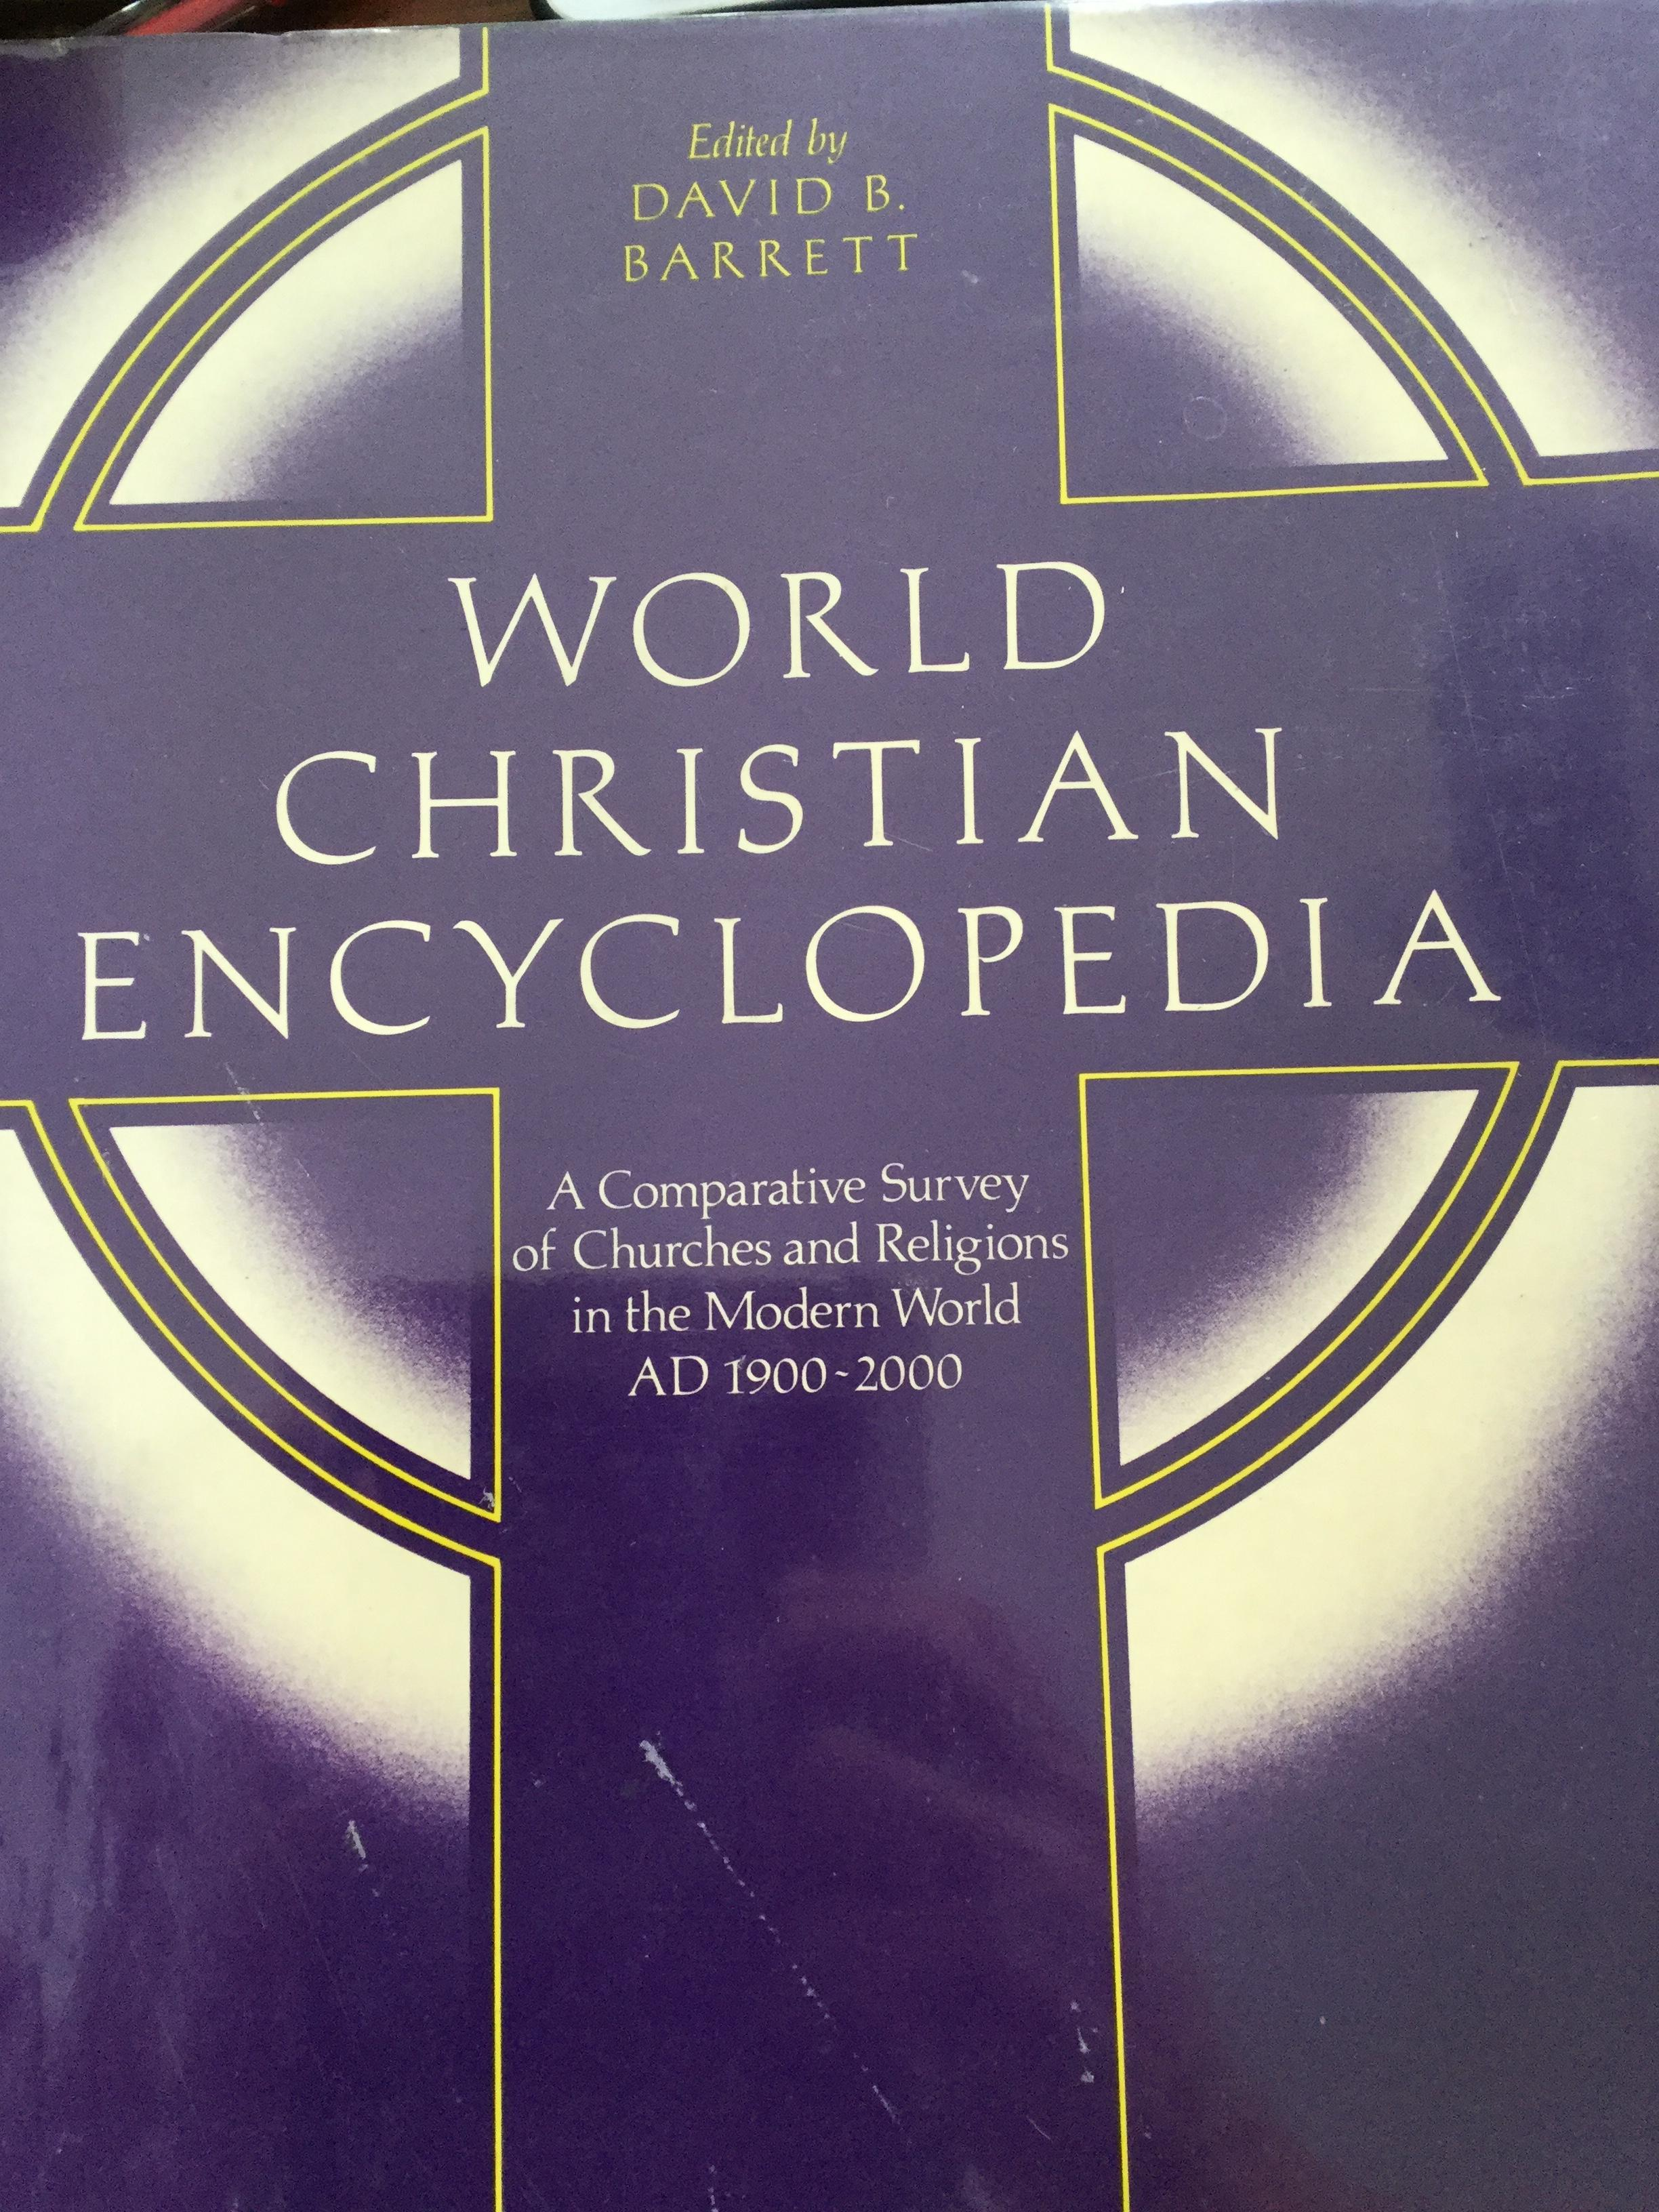 WORLD CHRISTIAN ENCYCLOPEDIA. A Comparative Survey of Churches and Religions in the Modern World AD 1900-2000. Edited by David B. Barrett